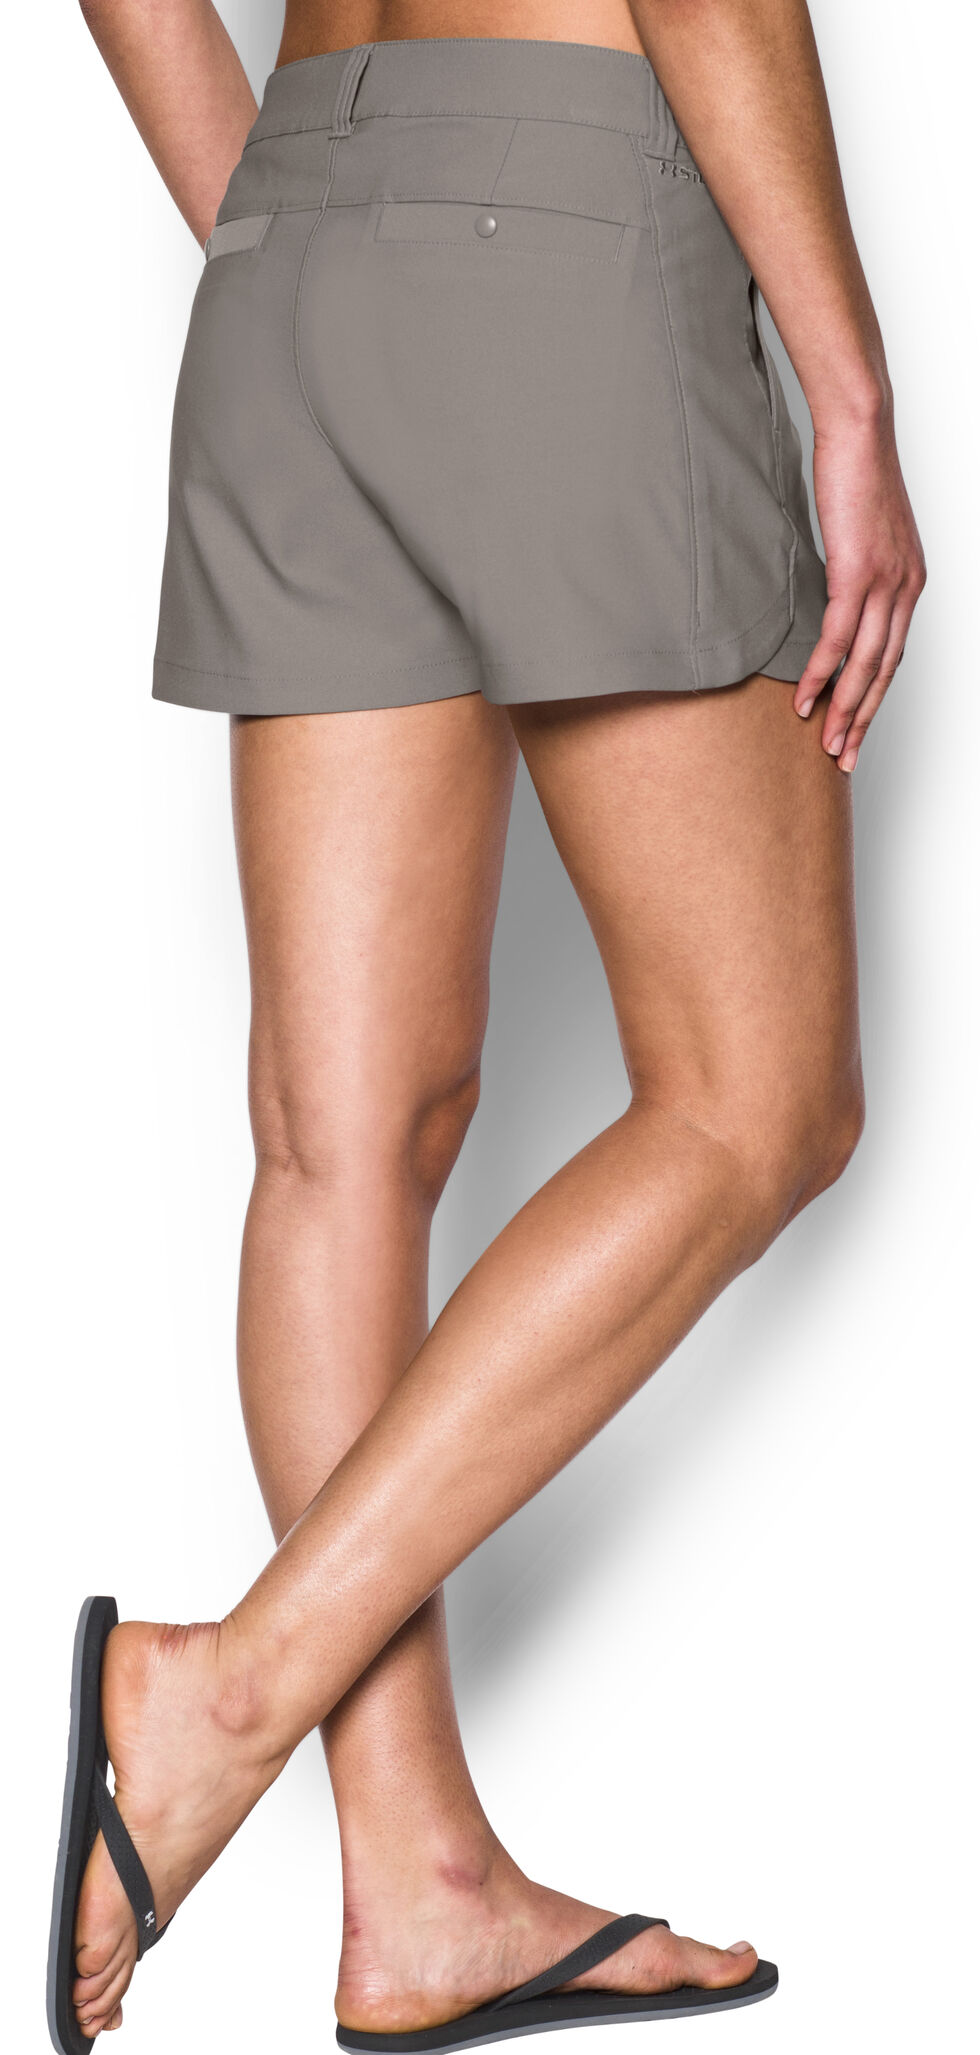 "Under Armour Women's Grey Fish Hunter 4"" Inseam Shorts, Grey, hi-res"